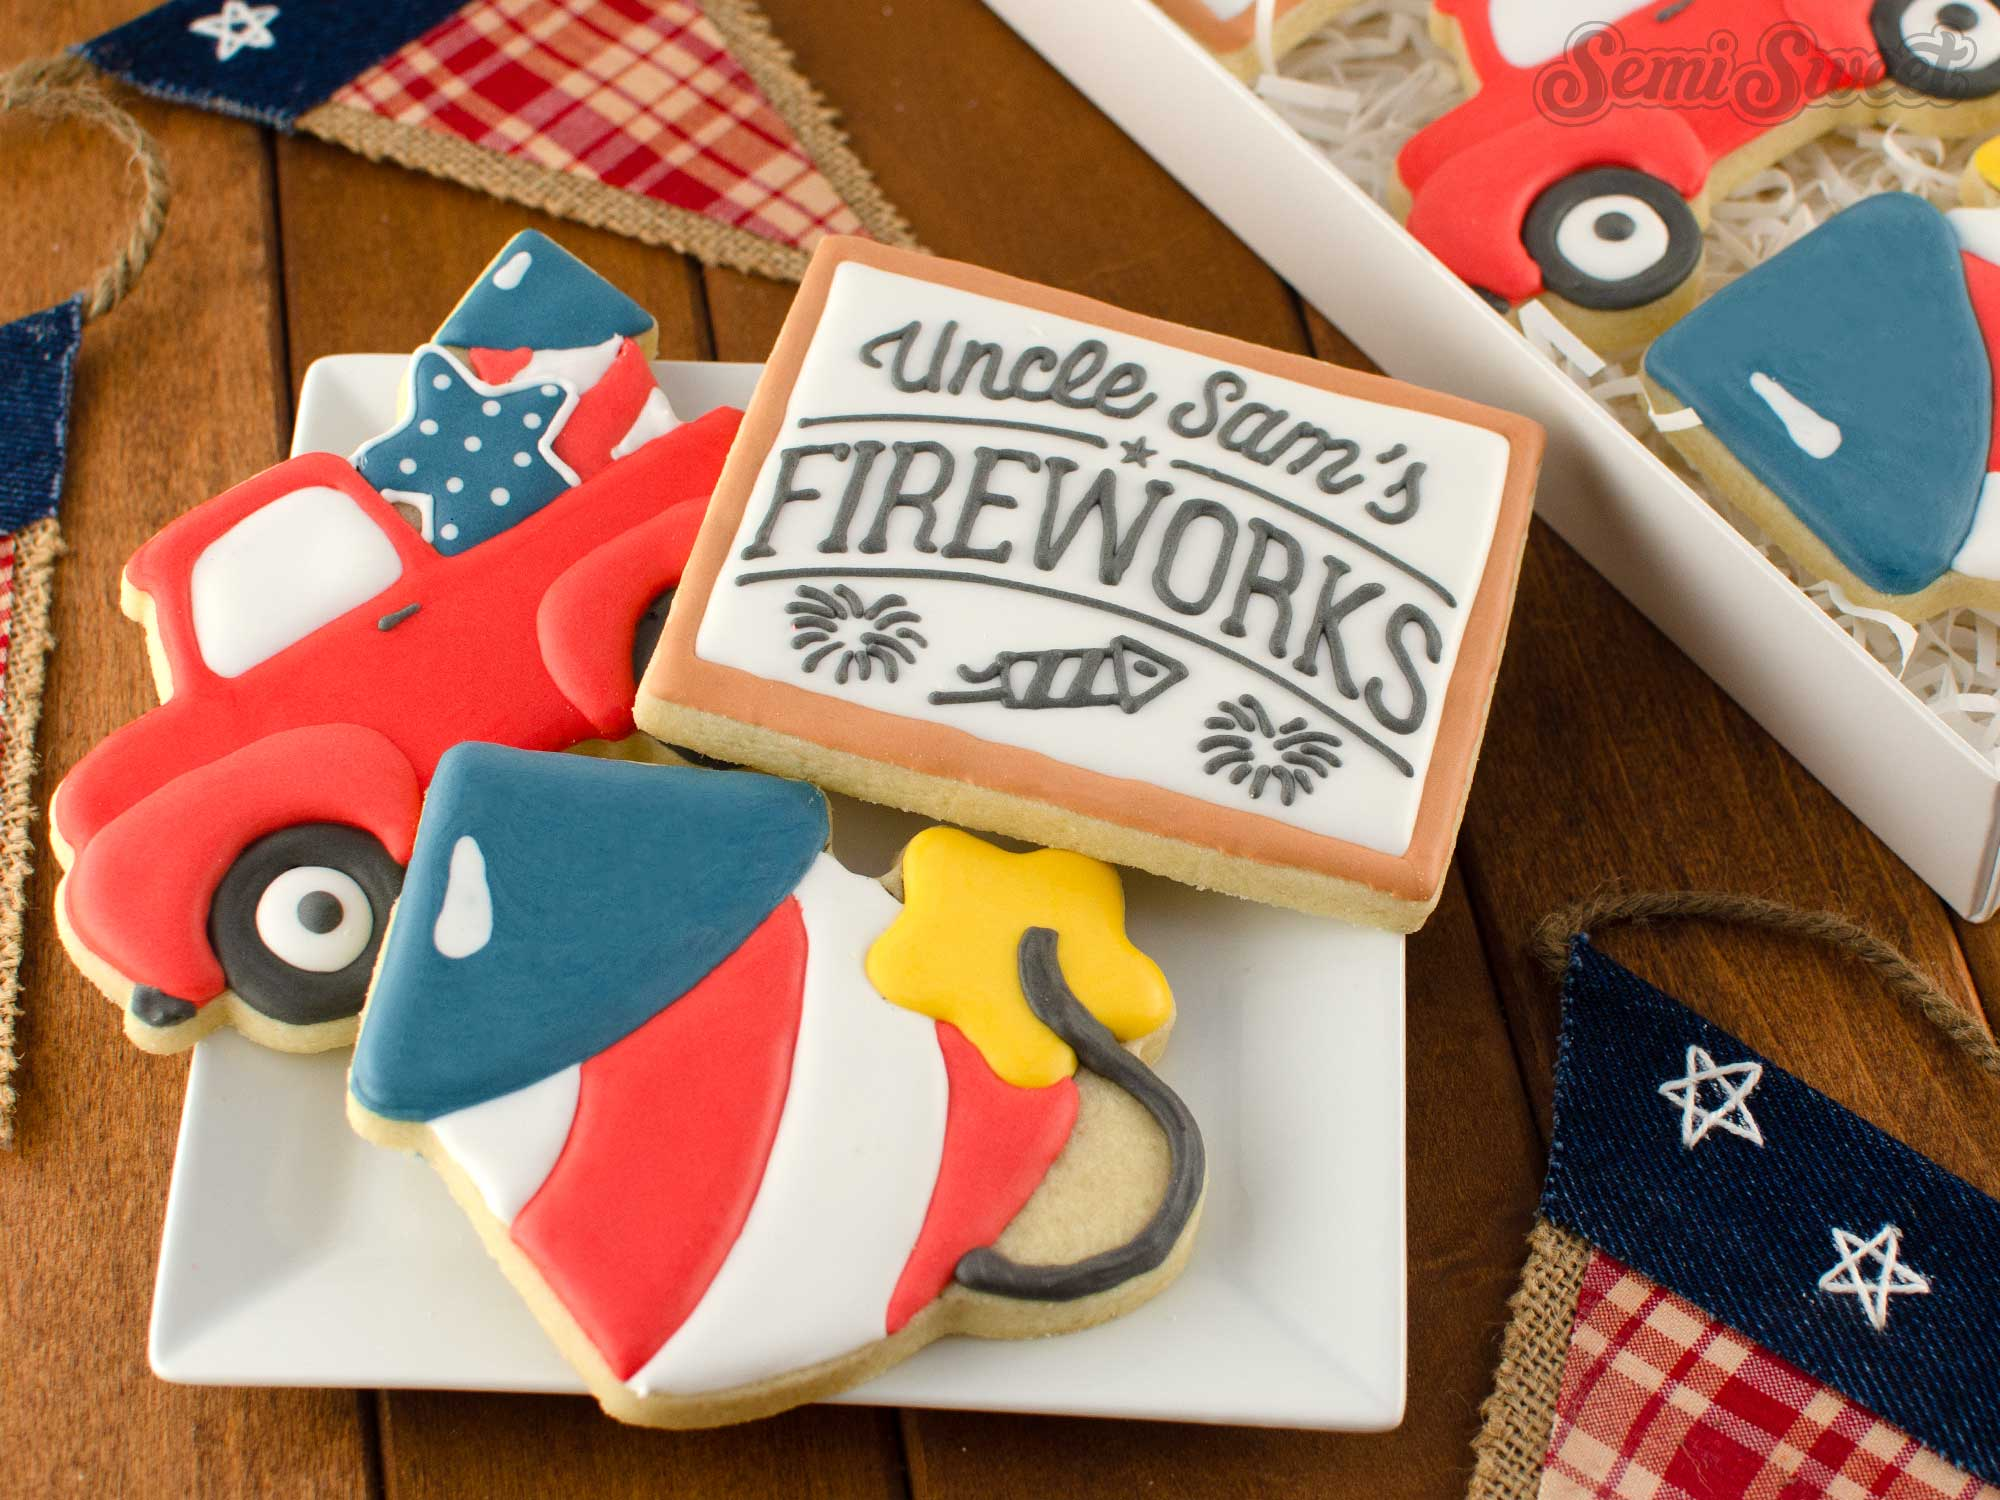 How to Make Fireworks Cookies